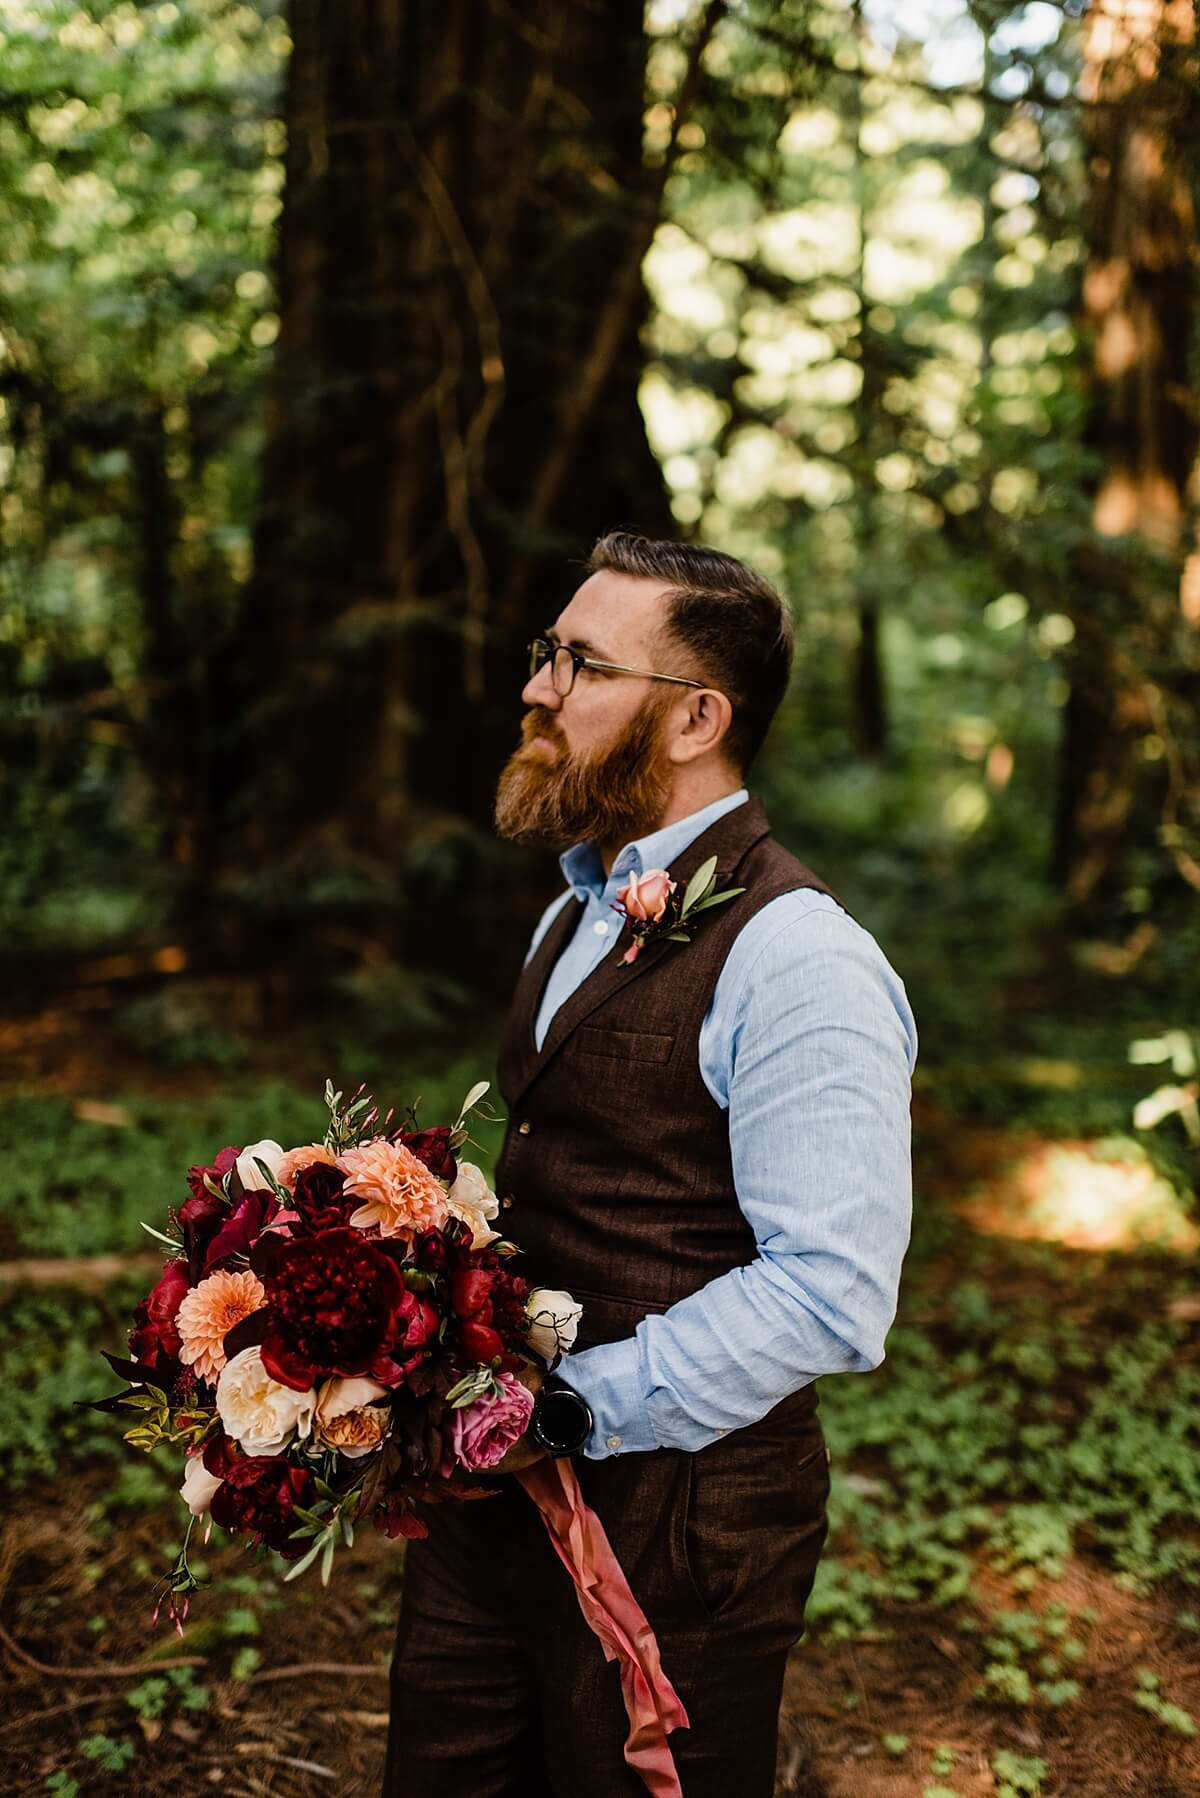 Allison-Brooks-Jedediah-Smiith-Redwoods-Adventure-Elopement-Wedding-S-Photography-Blog_0052.jpg